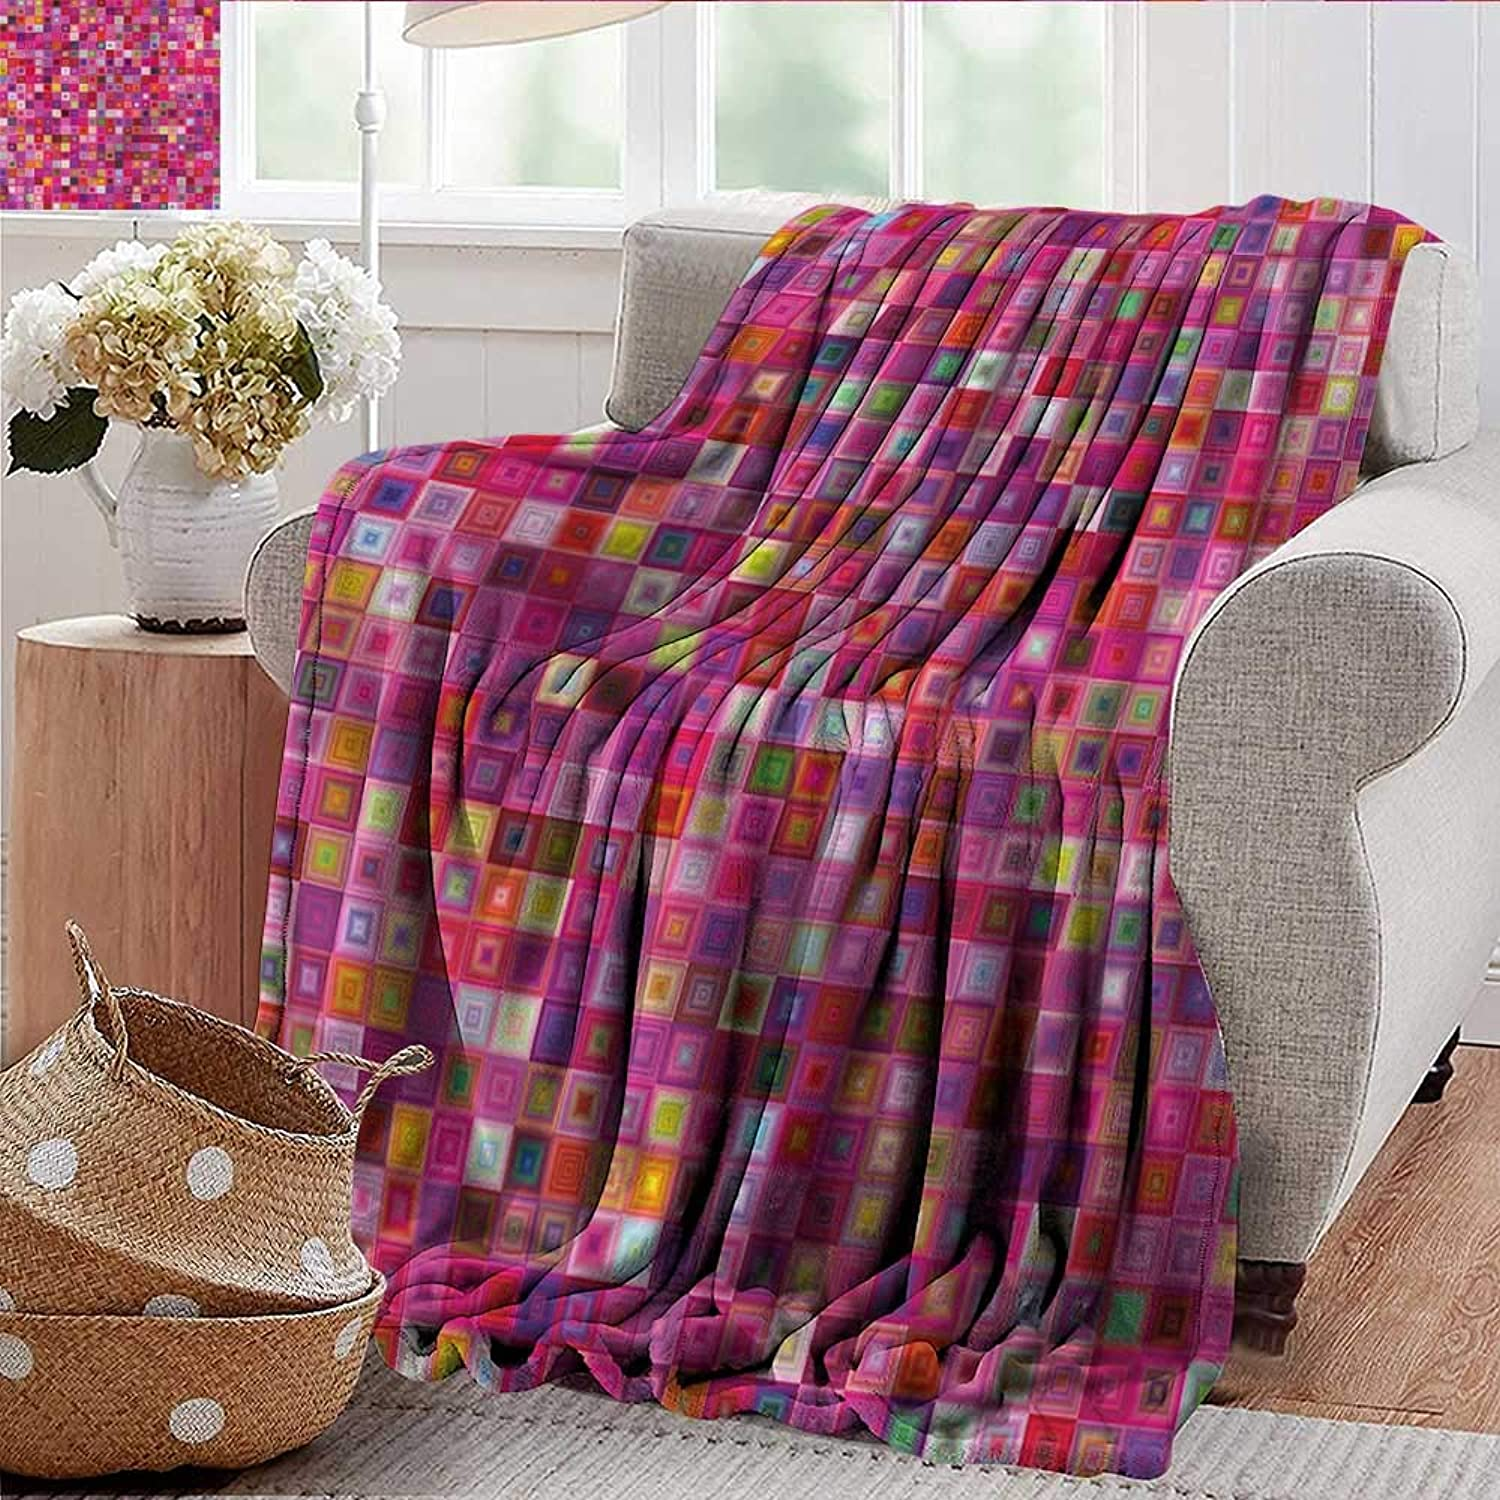 Xaviera Doherty Summer Blanket Pink,Square Grid Mosaic Pattern Weighted Blanket for Adults Kids, Better Deeper Sleep 35 x60